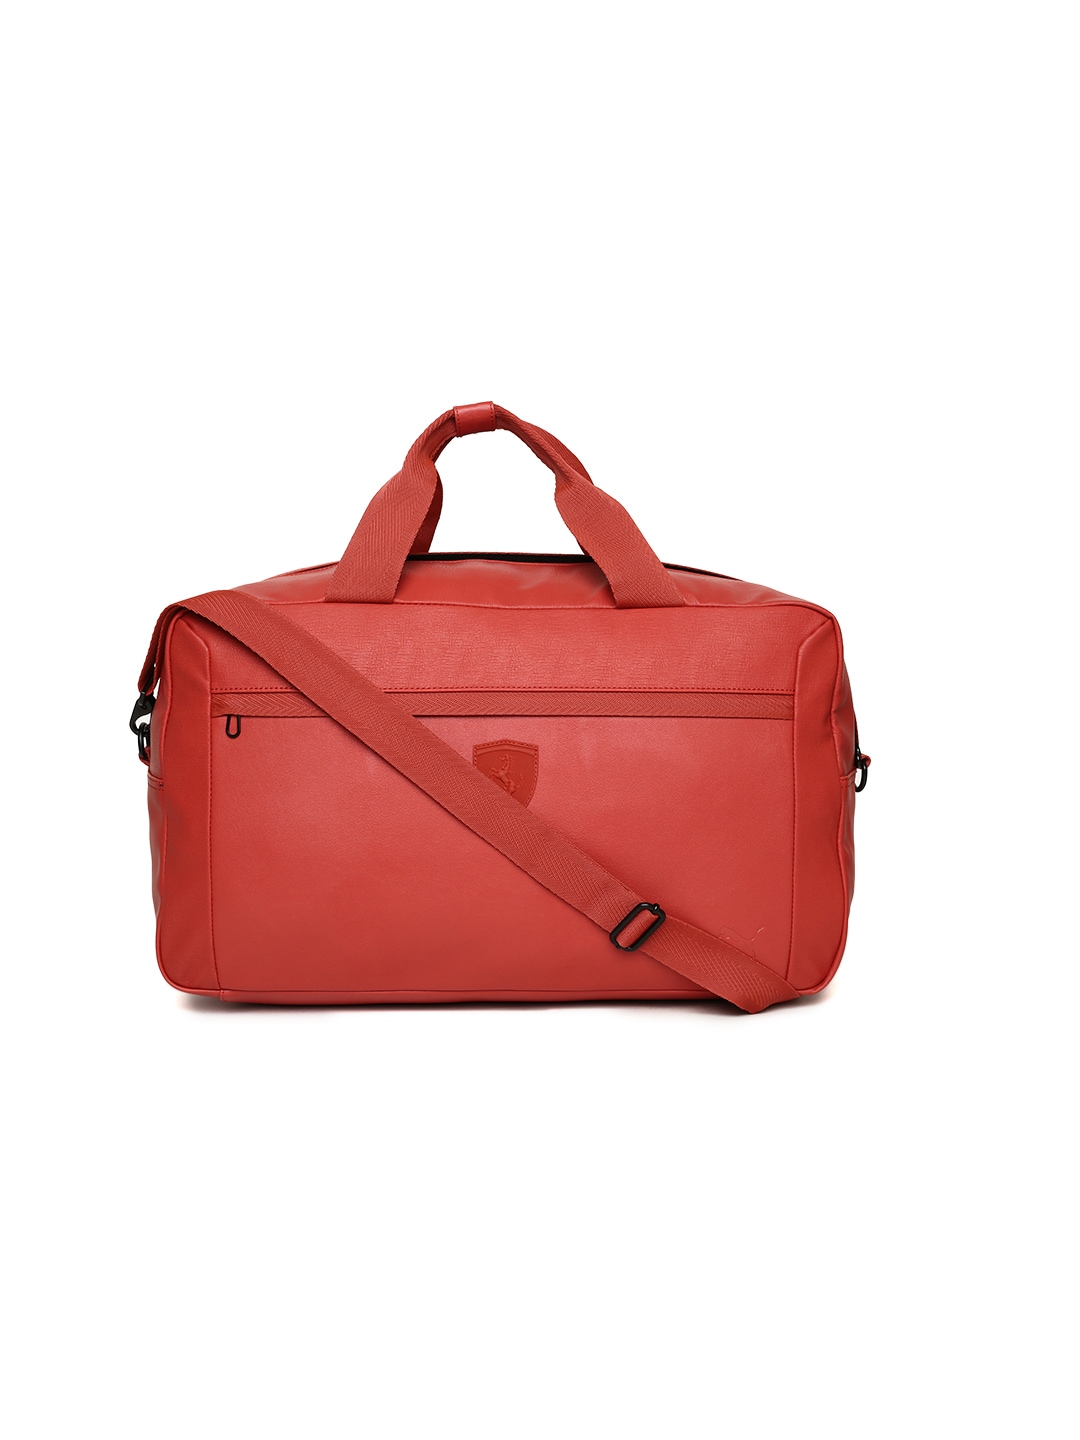 Puma Ferrari Ls Bags Handbags - Buy Puma Ferrari Ls Bags Handbags online in  India 5fddd17c5